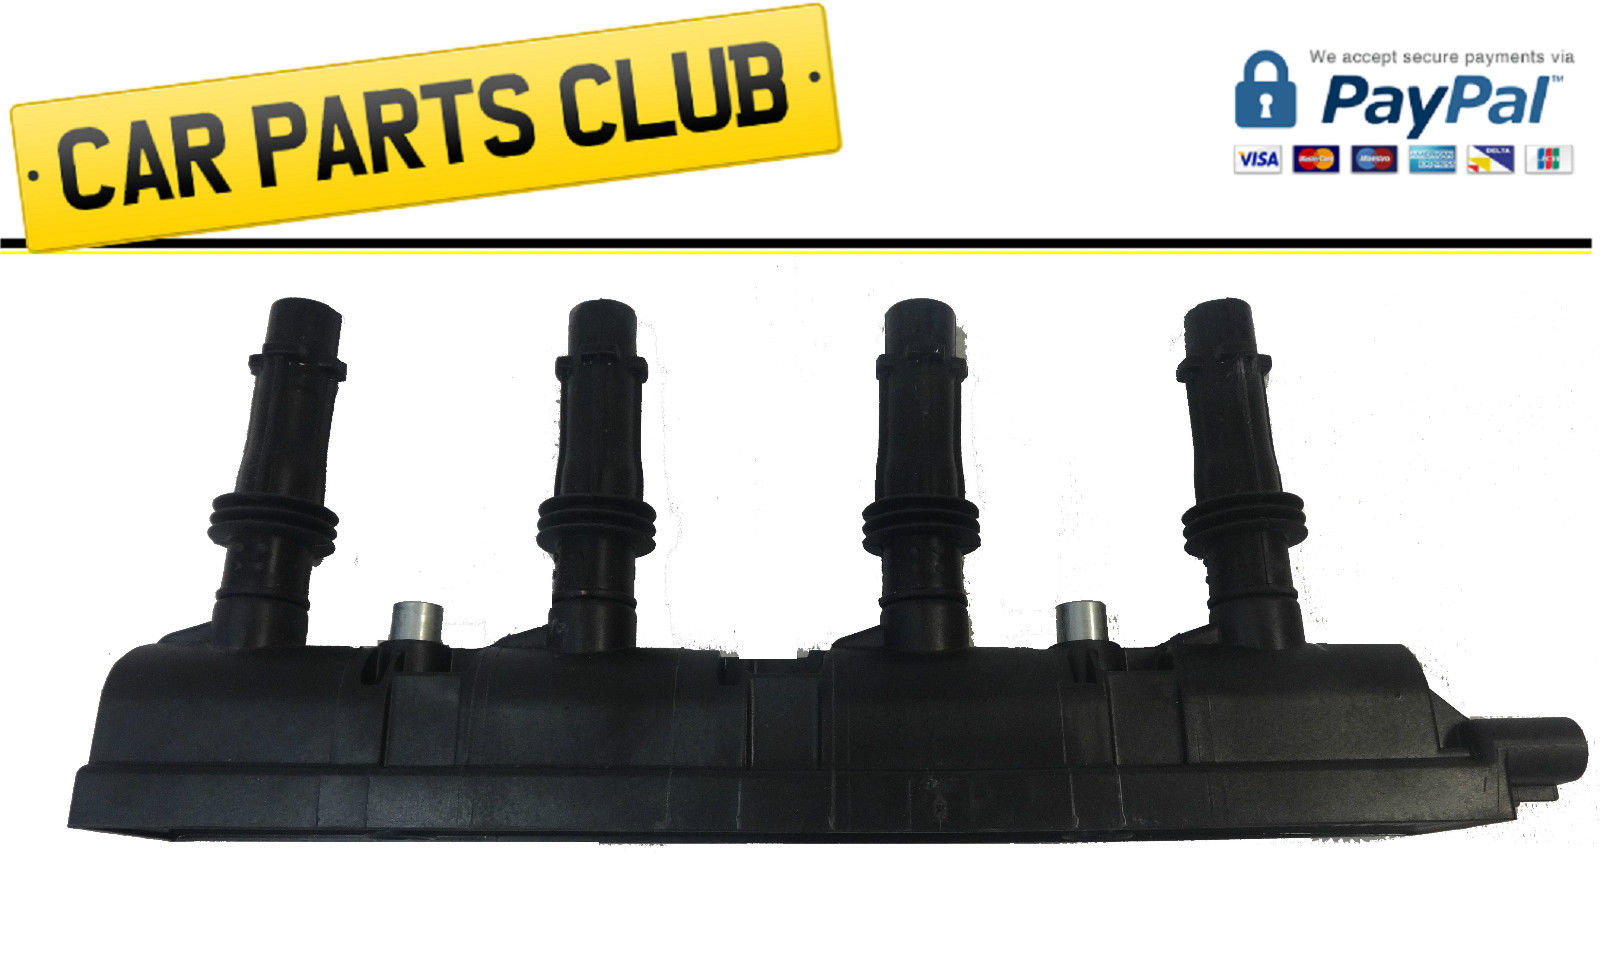 CHEVROLET AVEO CRUZE ORLANDO  VOLT 1.2 1.4 PETROL IGNITION COIL PACK 55595499